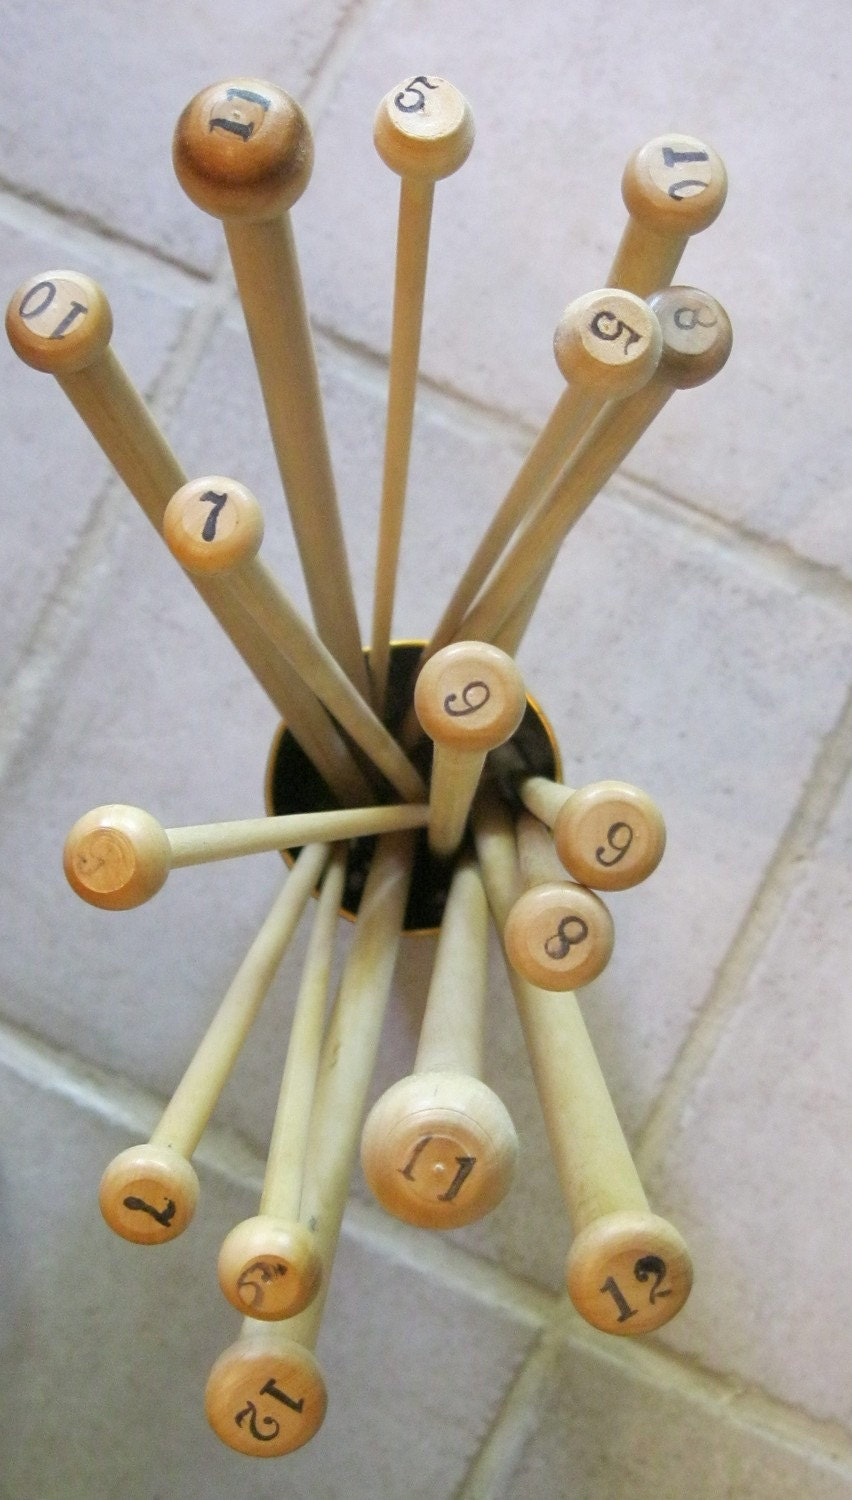 Giant Circular Knitting Needles Uk : Super long hard to find knitting needles us mm from